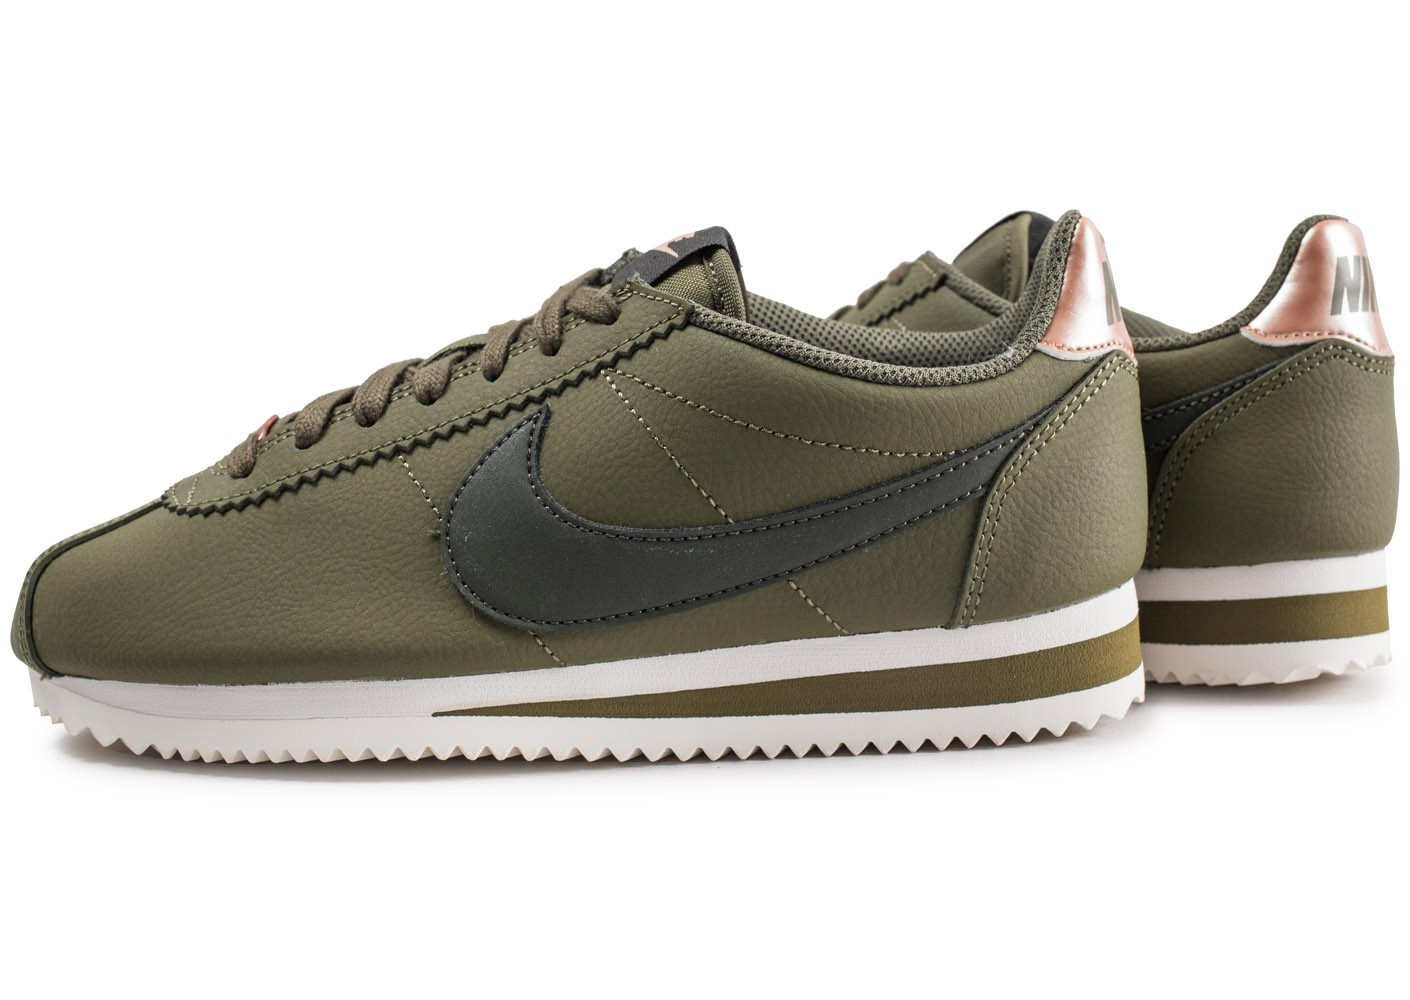 Nike Classic Cortez Leather kaki femme - Chaussures Baskets ...